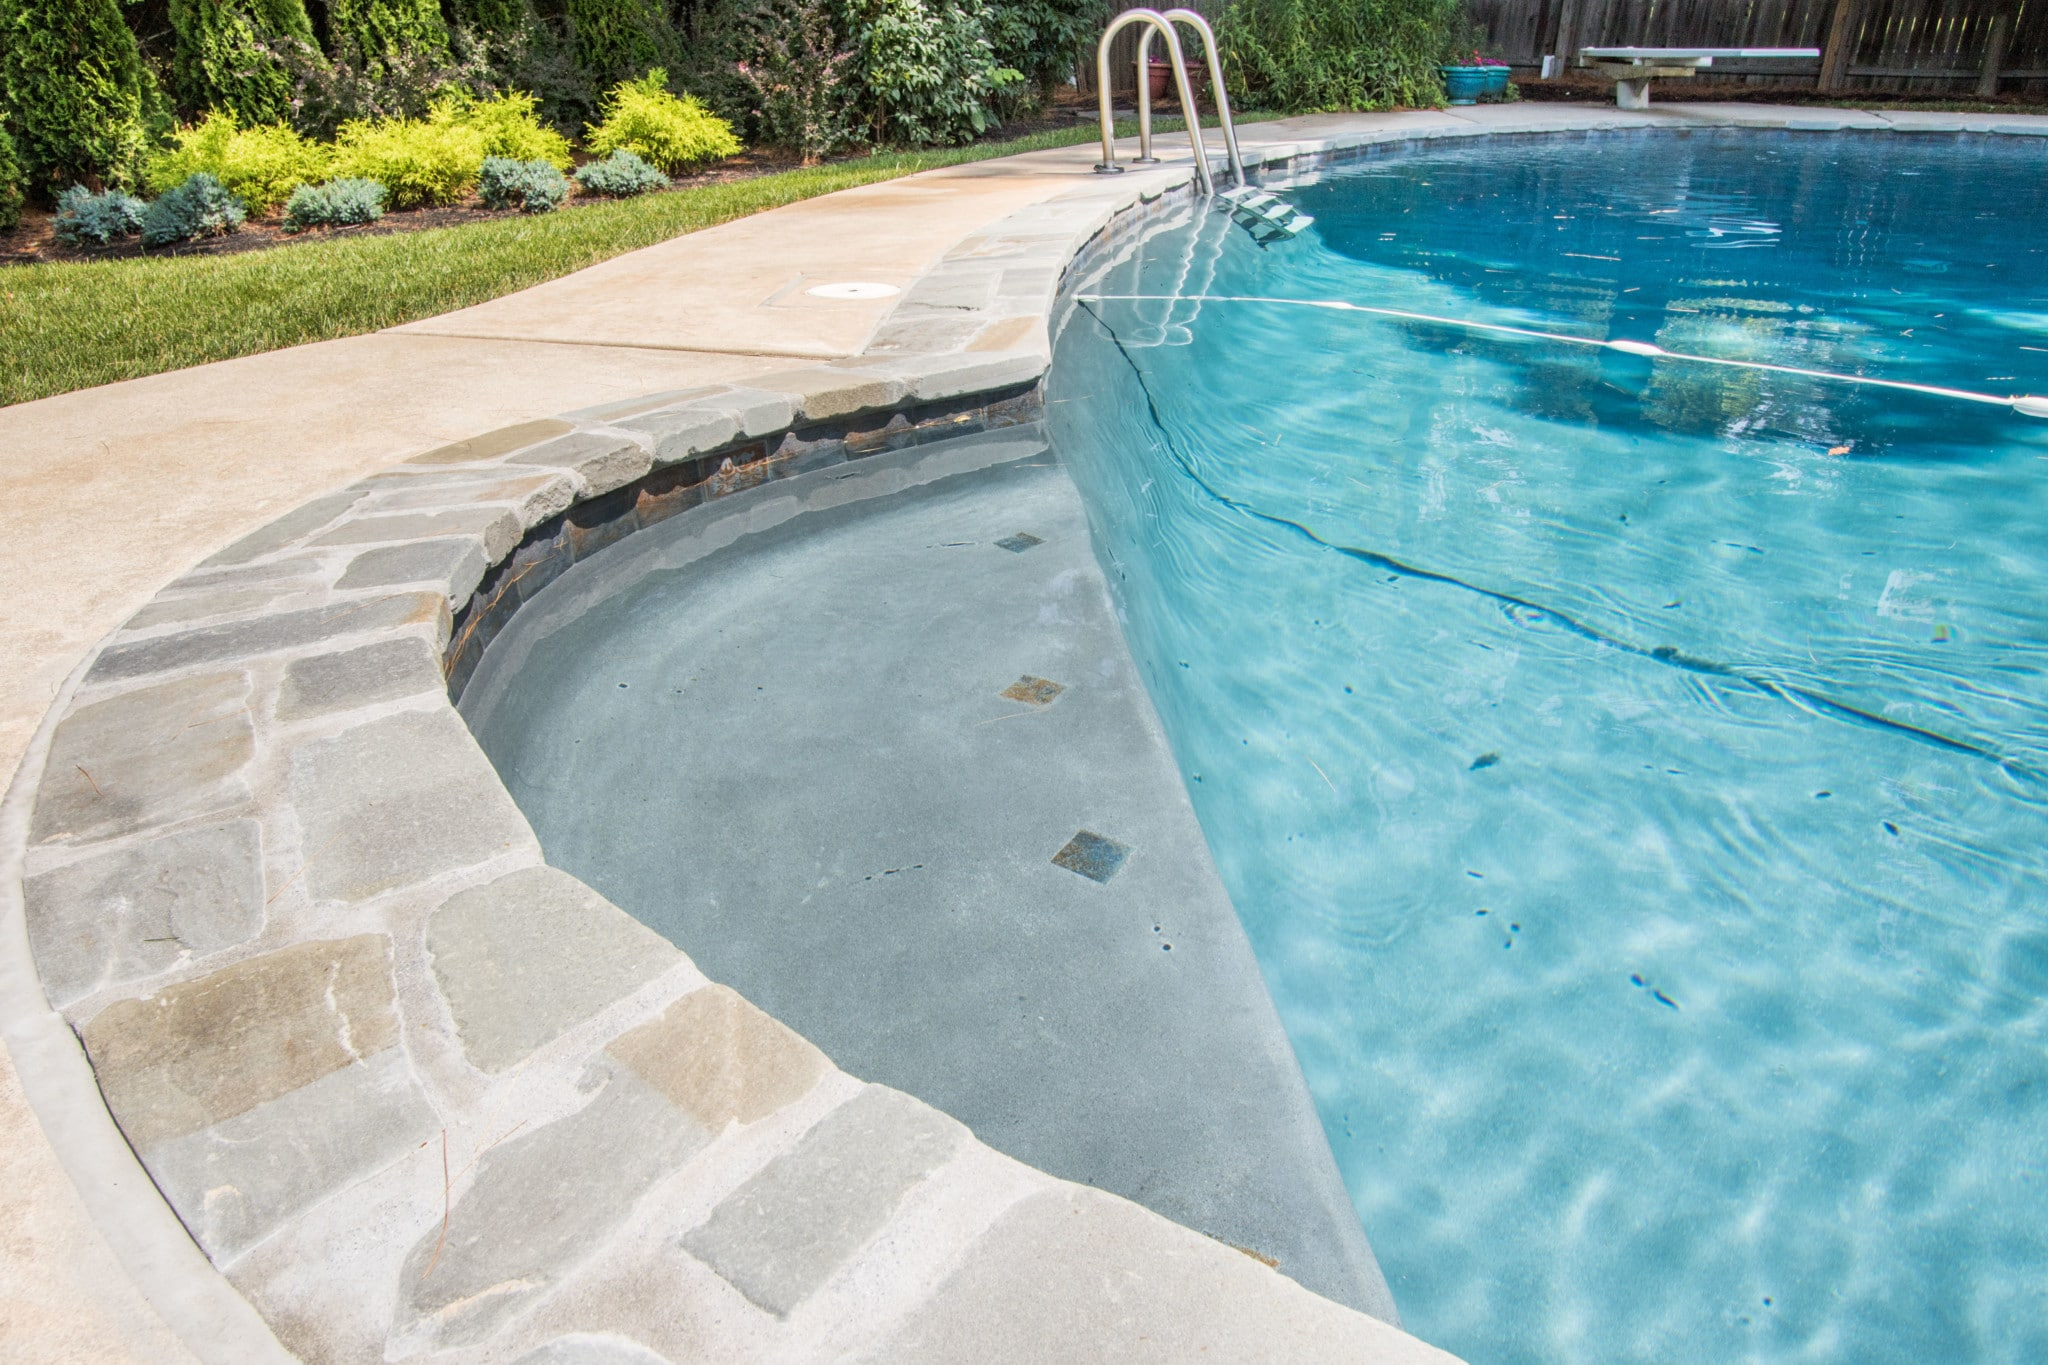 Pool Tile Amp Coping Coronado S Pool Renovations Inc